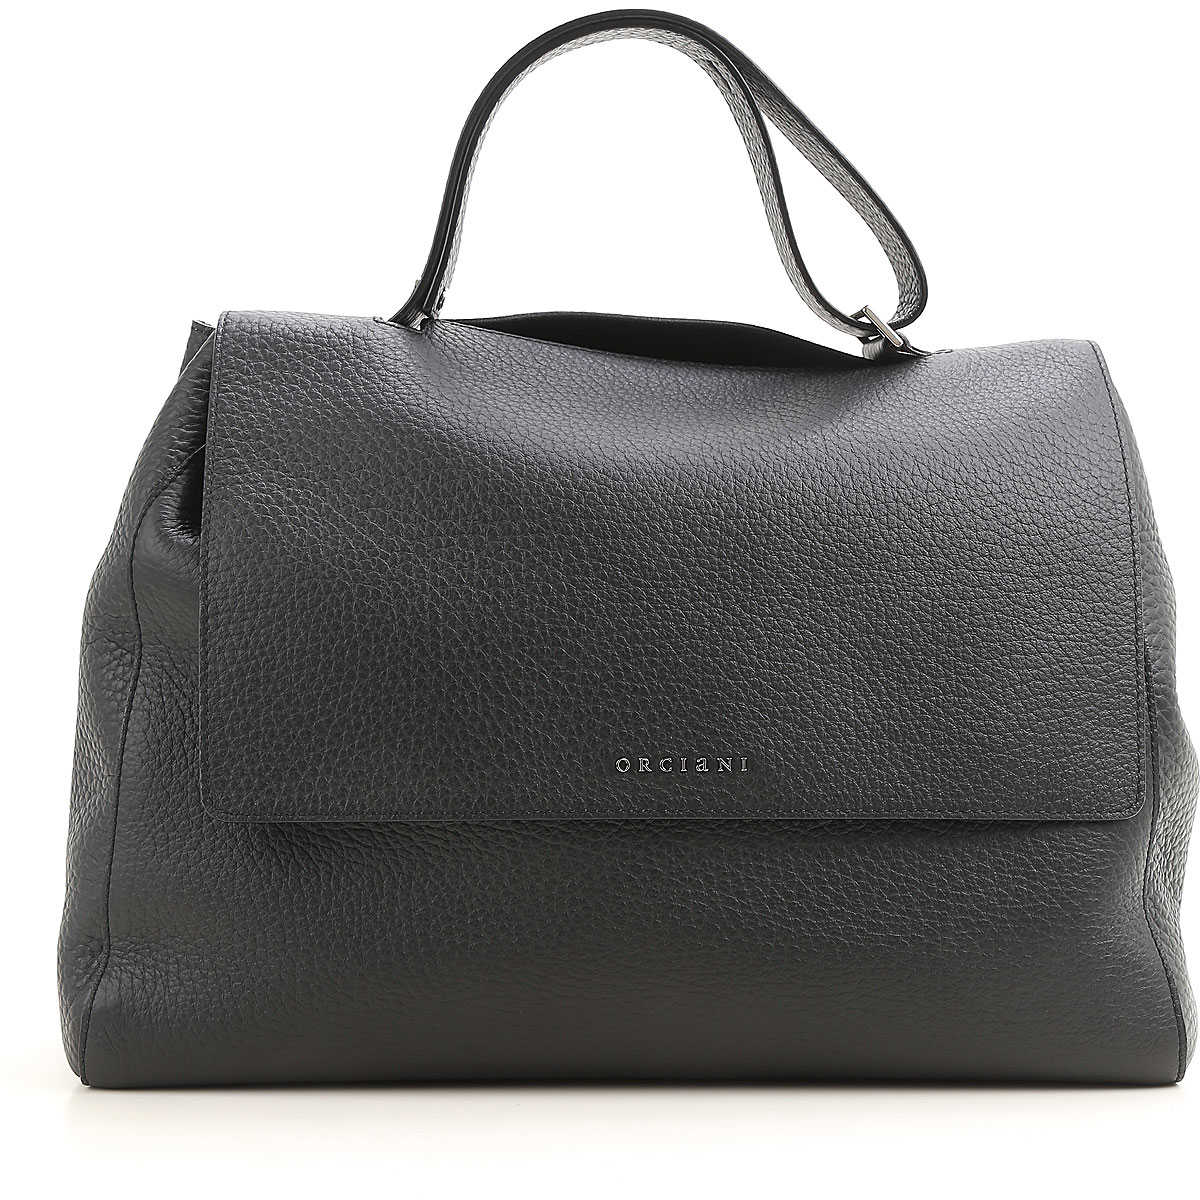 Orciani Tote Bag On Sale